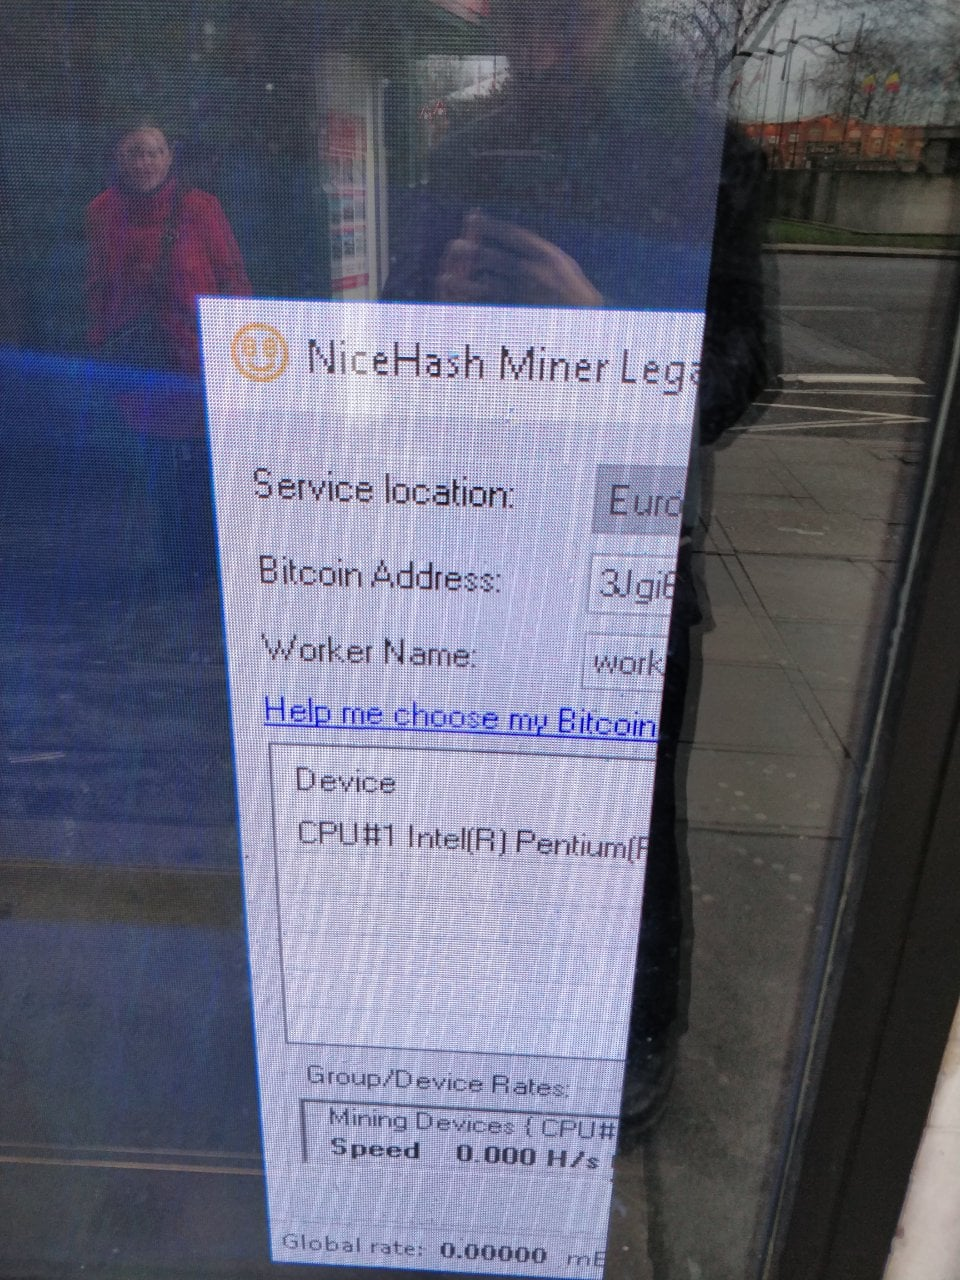 Close up of the window. It is a BitCoin miner